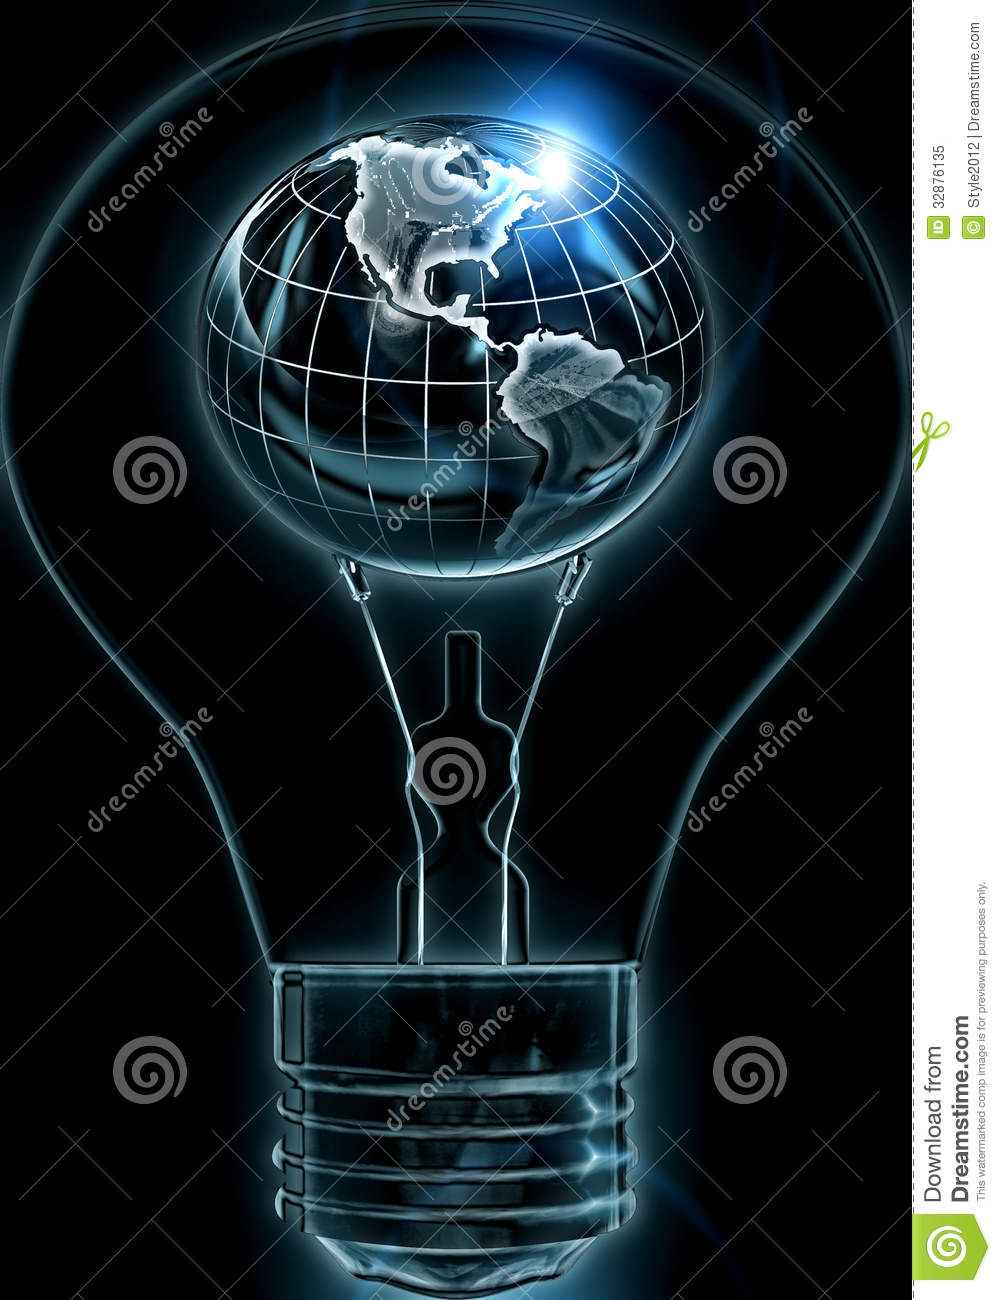 Great Ideas Can Move The World Stock Illustration Image